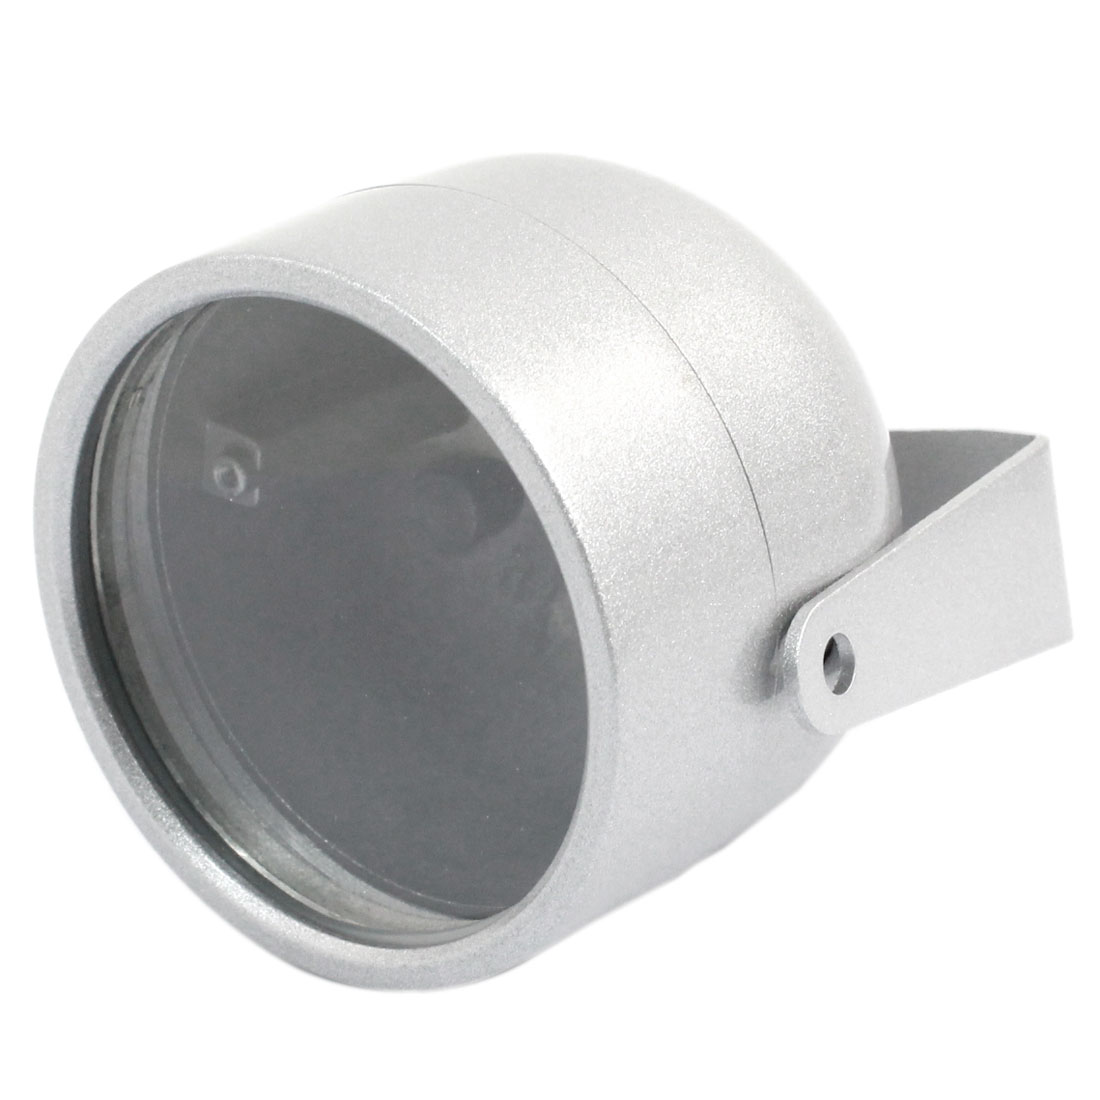 "Oval Shaped Silver Gray Metal CCTV Camera Housing Case 3"" High"